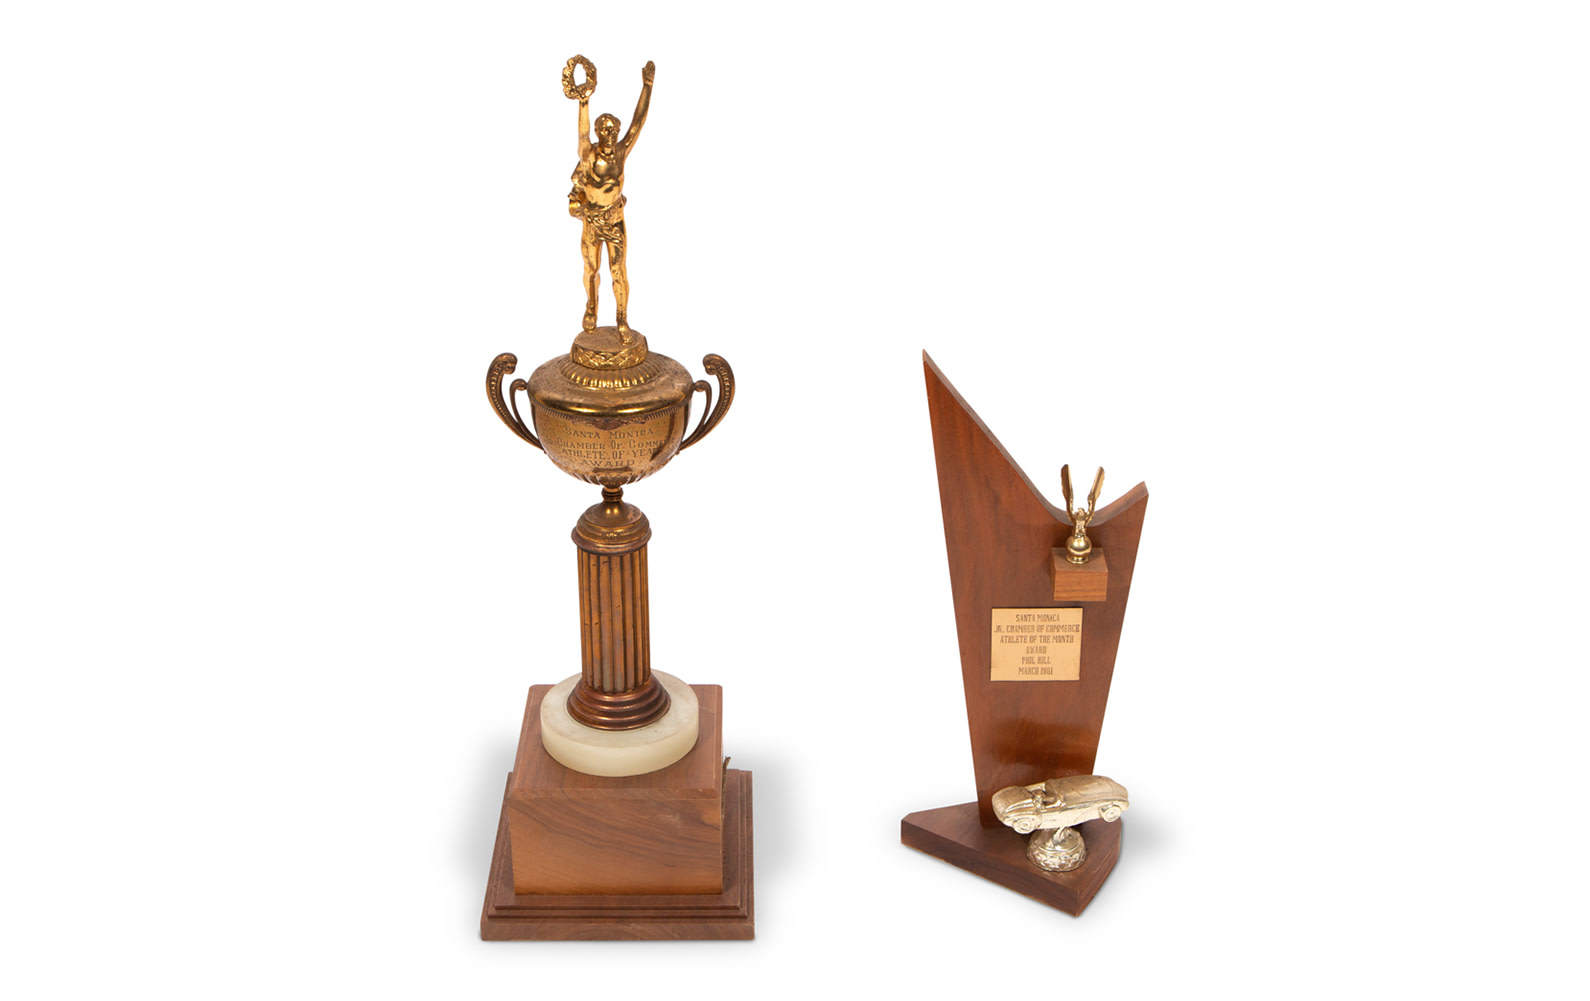 Athlete of the Month and Athlete of the Year Trophies Presented to Phil Hill by the Santa Monica Jr. Chamber of Commerce, 1961